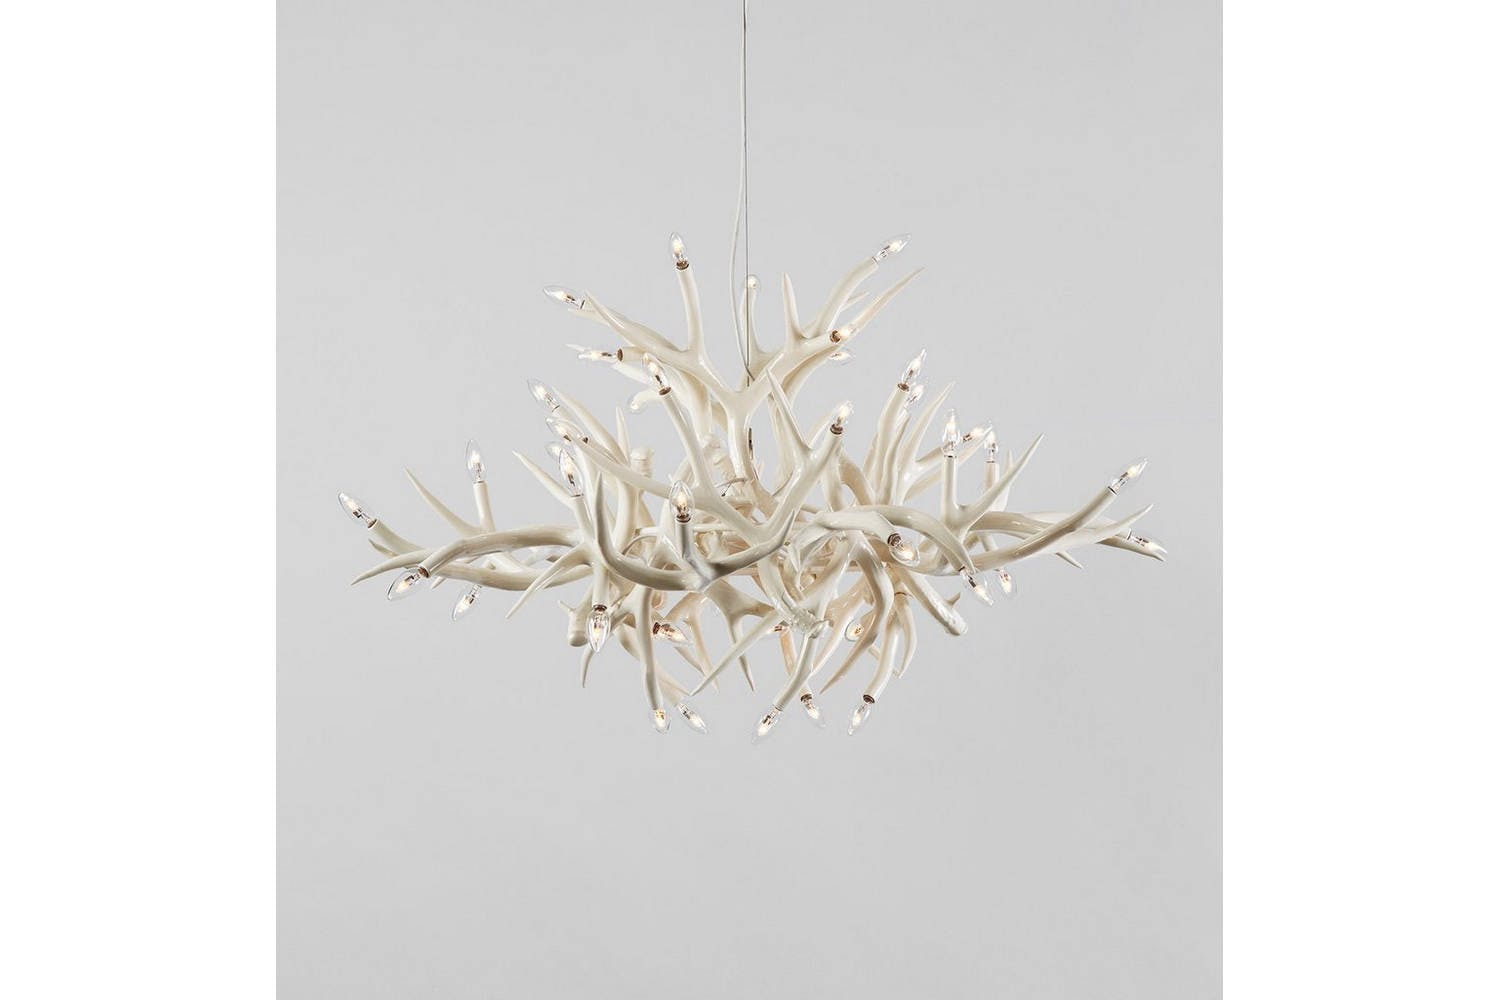 Superordinate antler chandelier 24 antlers by jason miller for superordinate antler chandelier 24 antlers by jason miller for roll hill mozeypictures Image collections